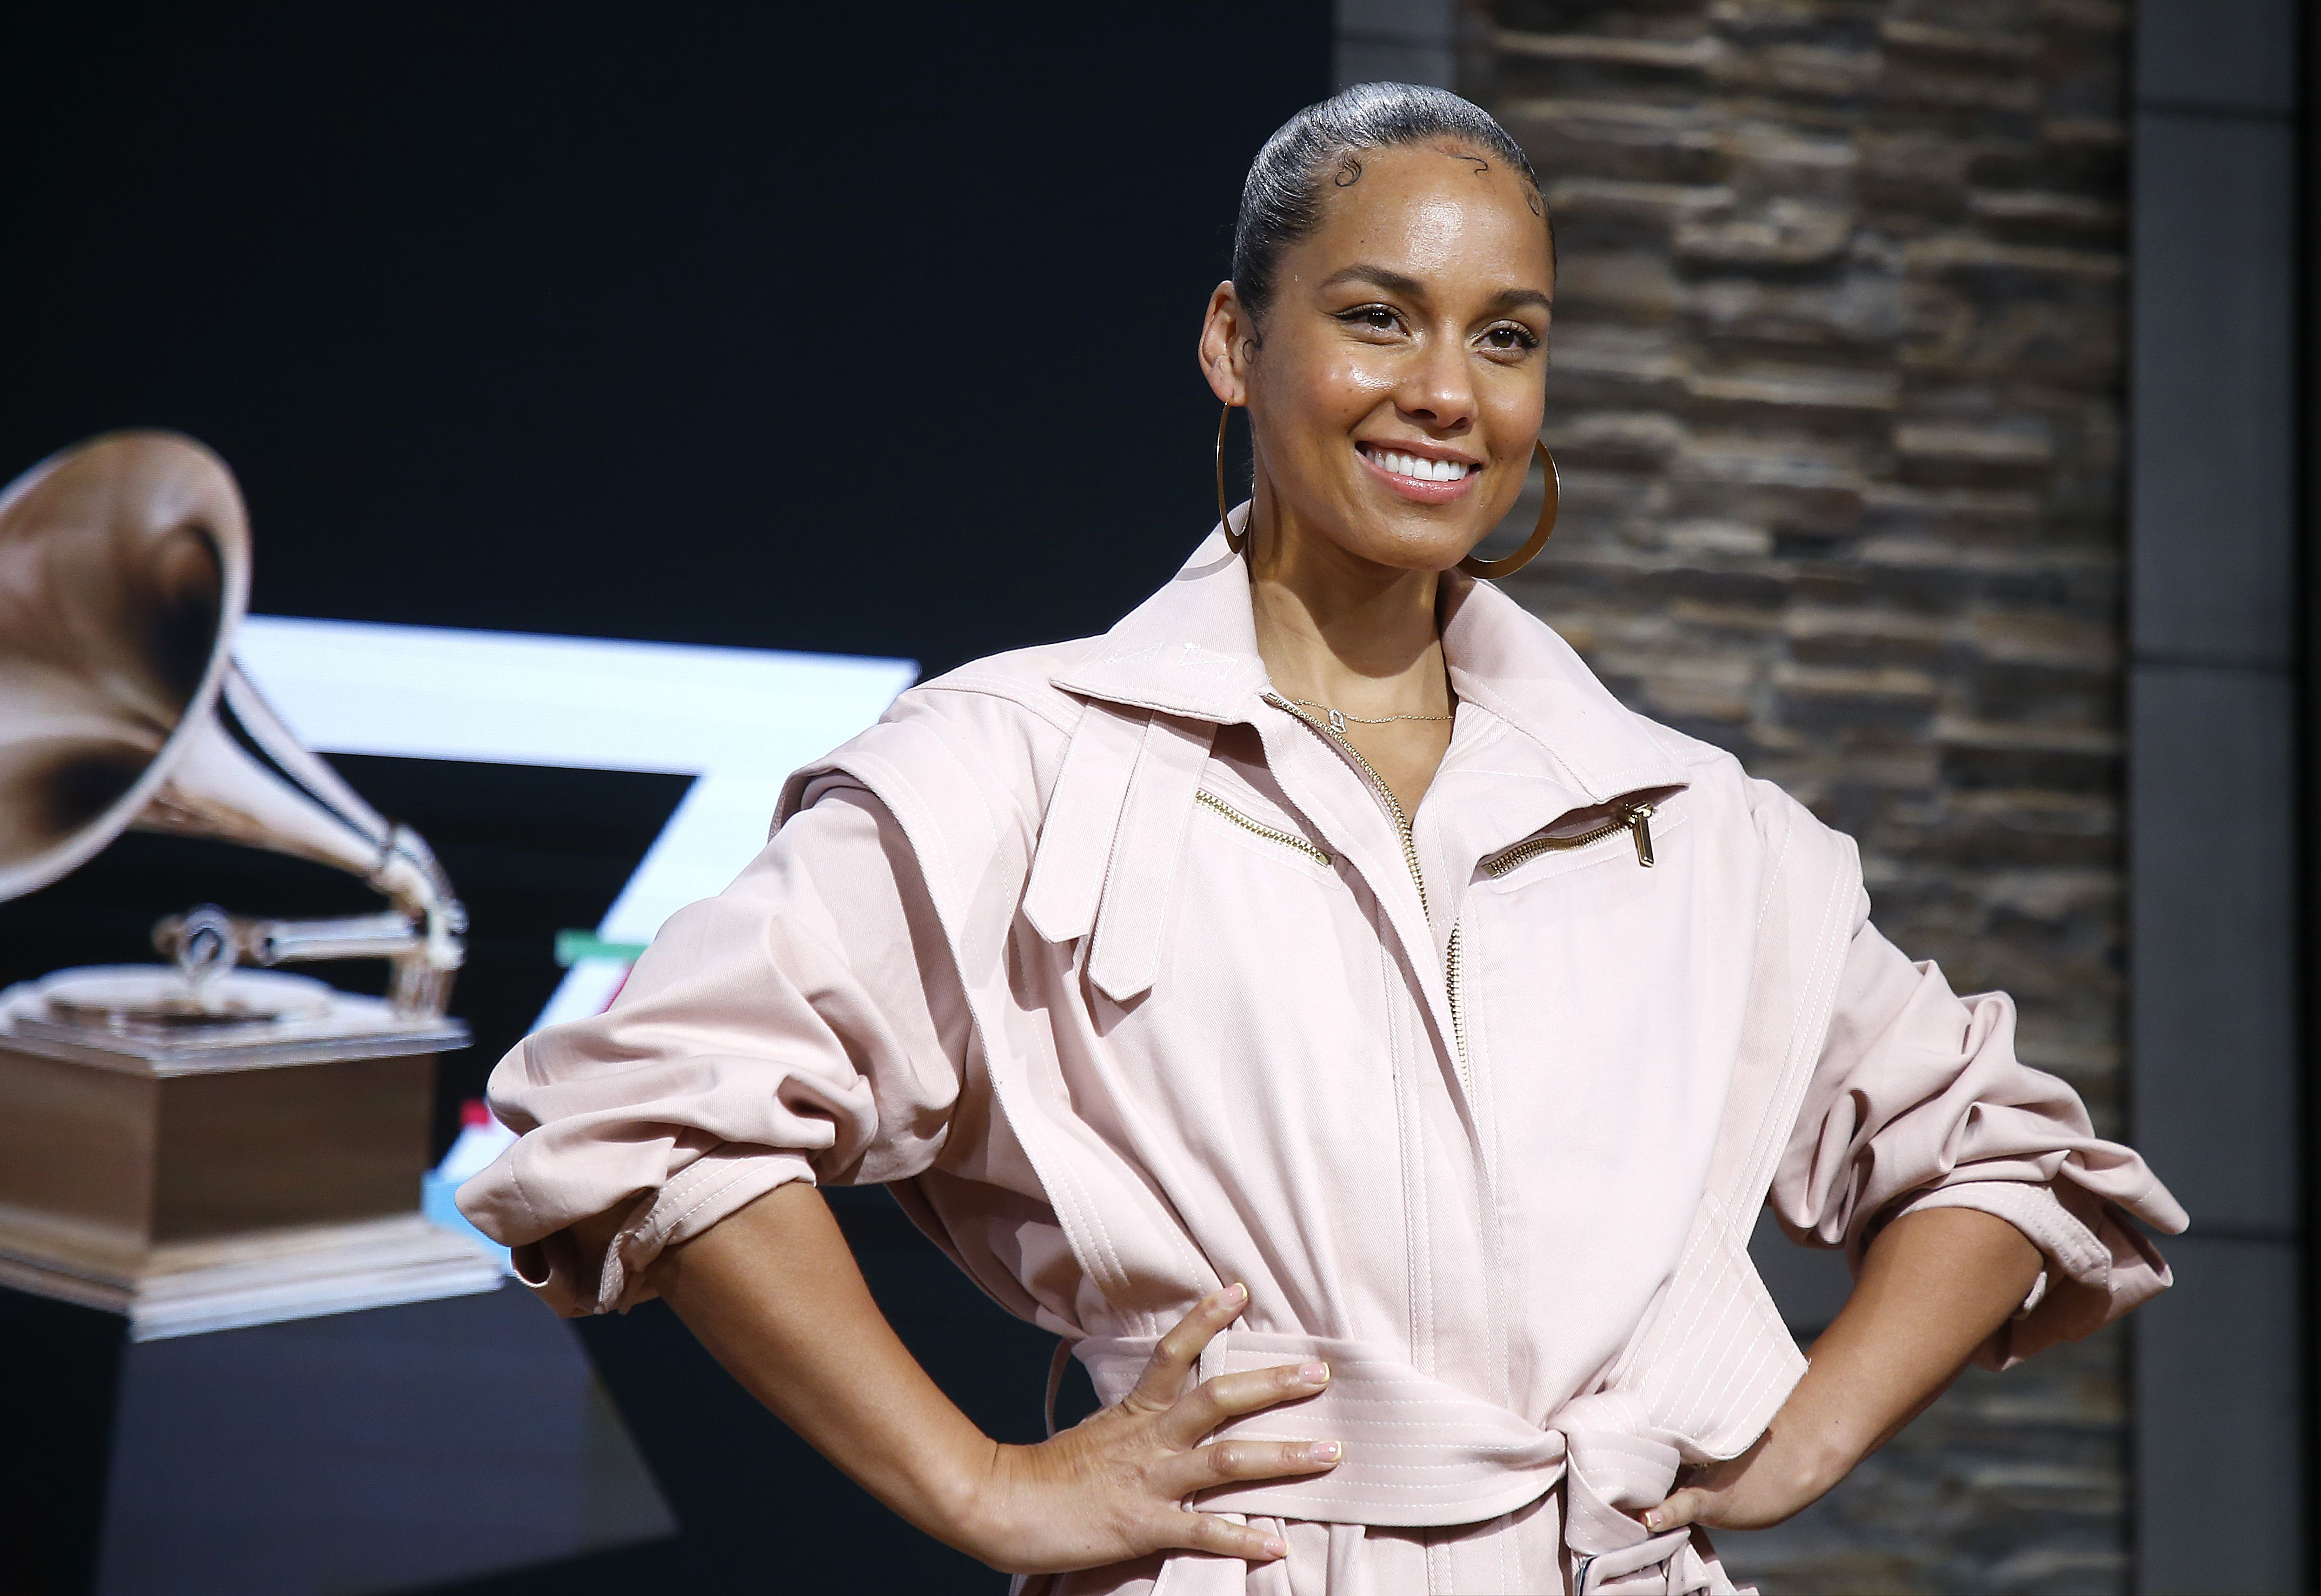 15 Times Grammys Host Alicia Keys Shared No-Makeup Photos On Instagram